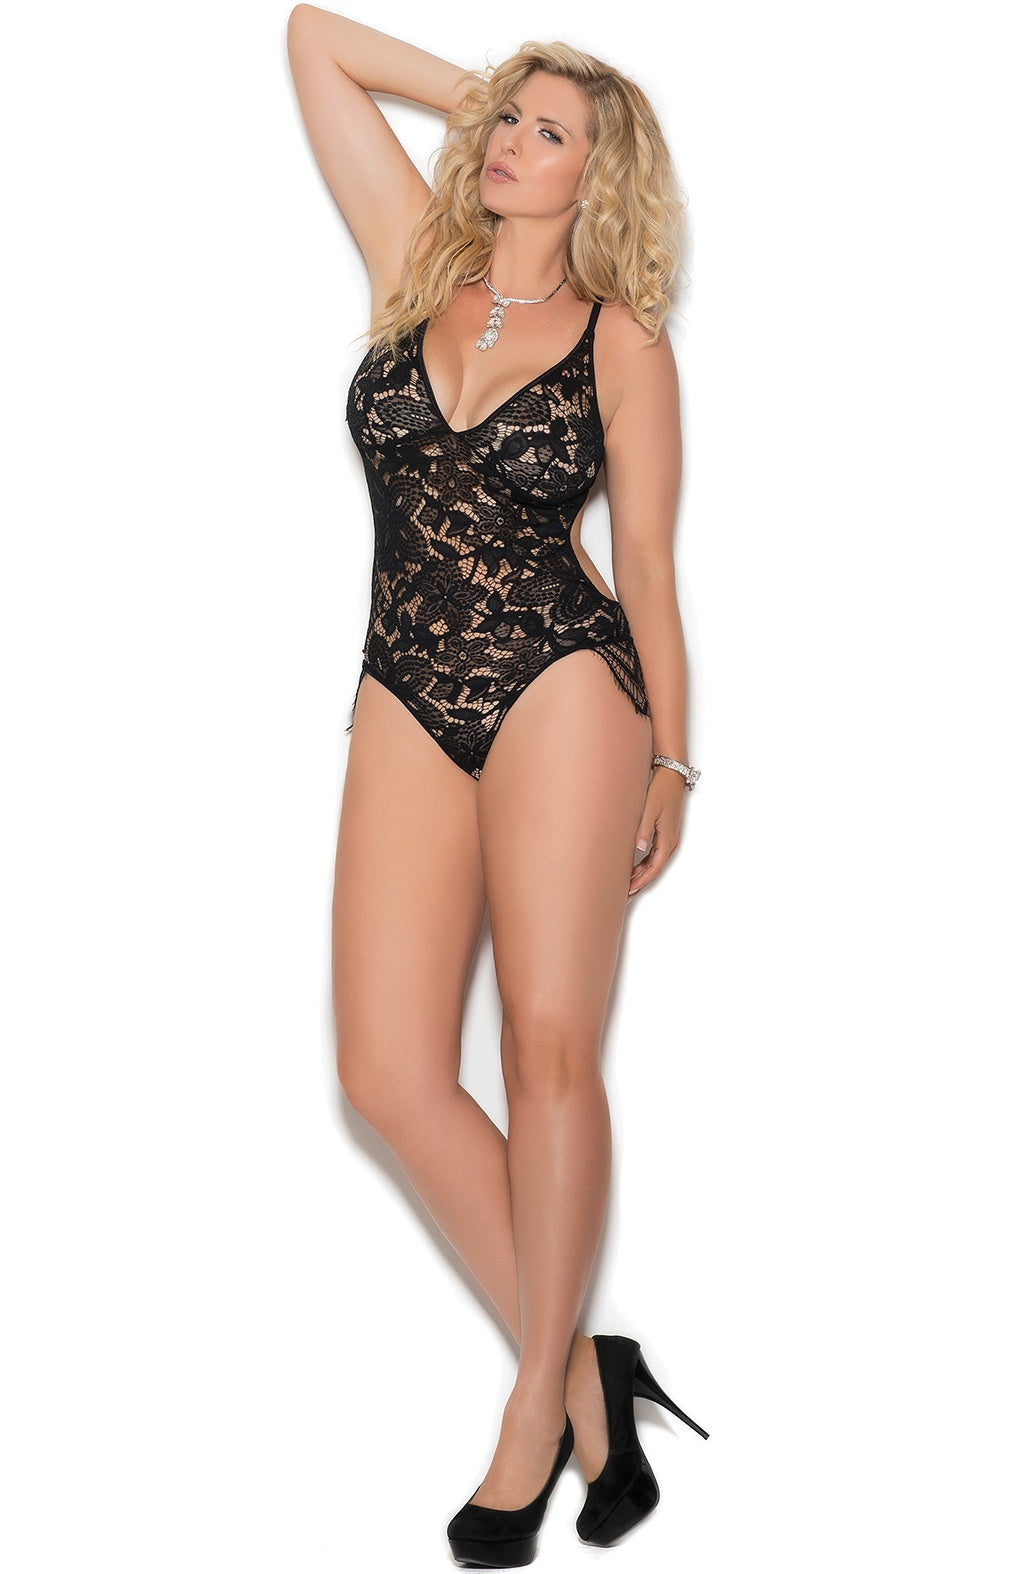 Luxury black bodysuit - Sexylingerieland